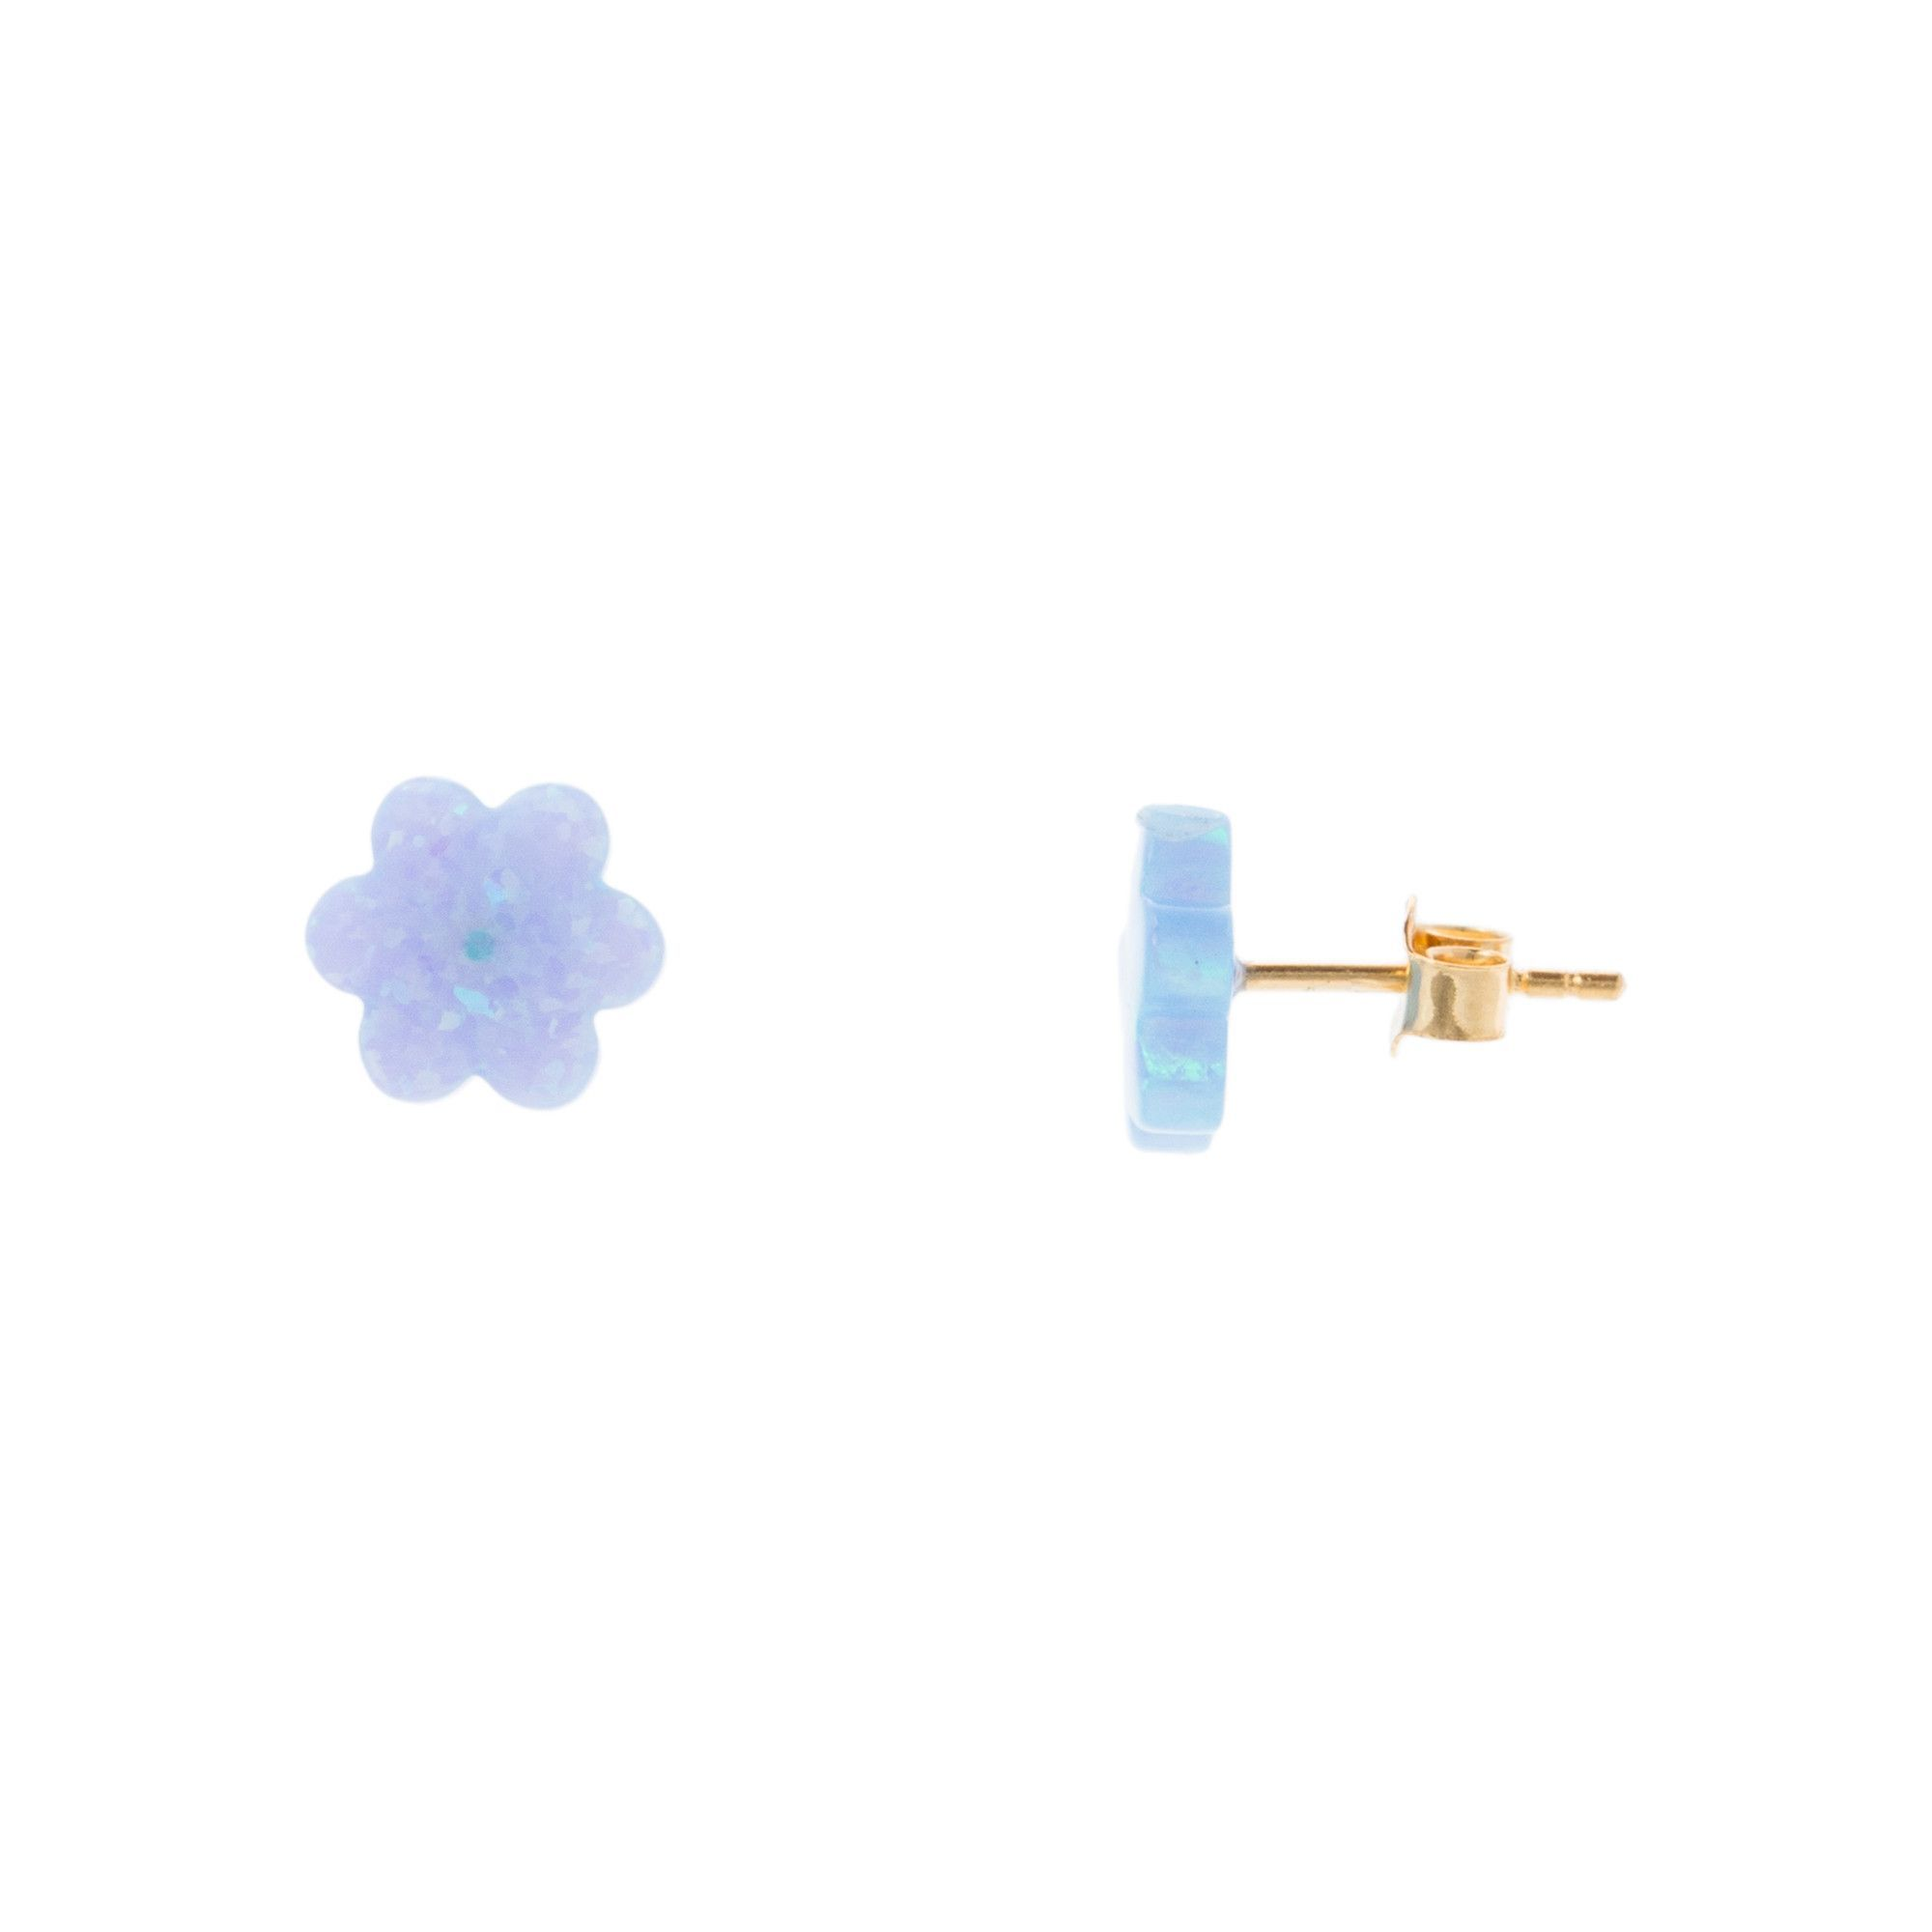 blue listing earringsblue silver il stud studs earrings sterling opal studsopal women fullxfull tiny ear